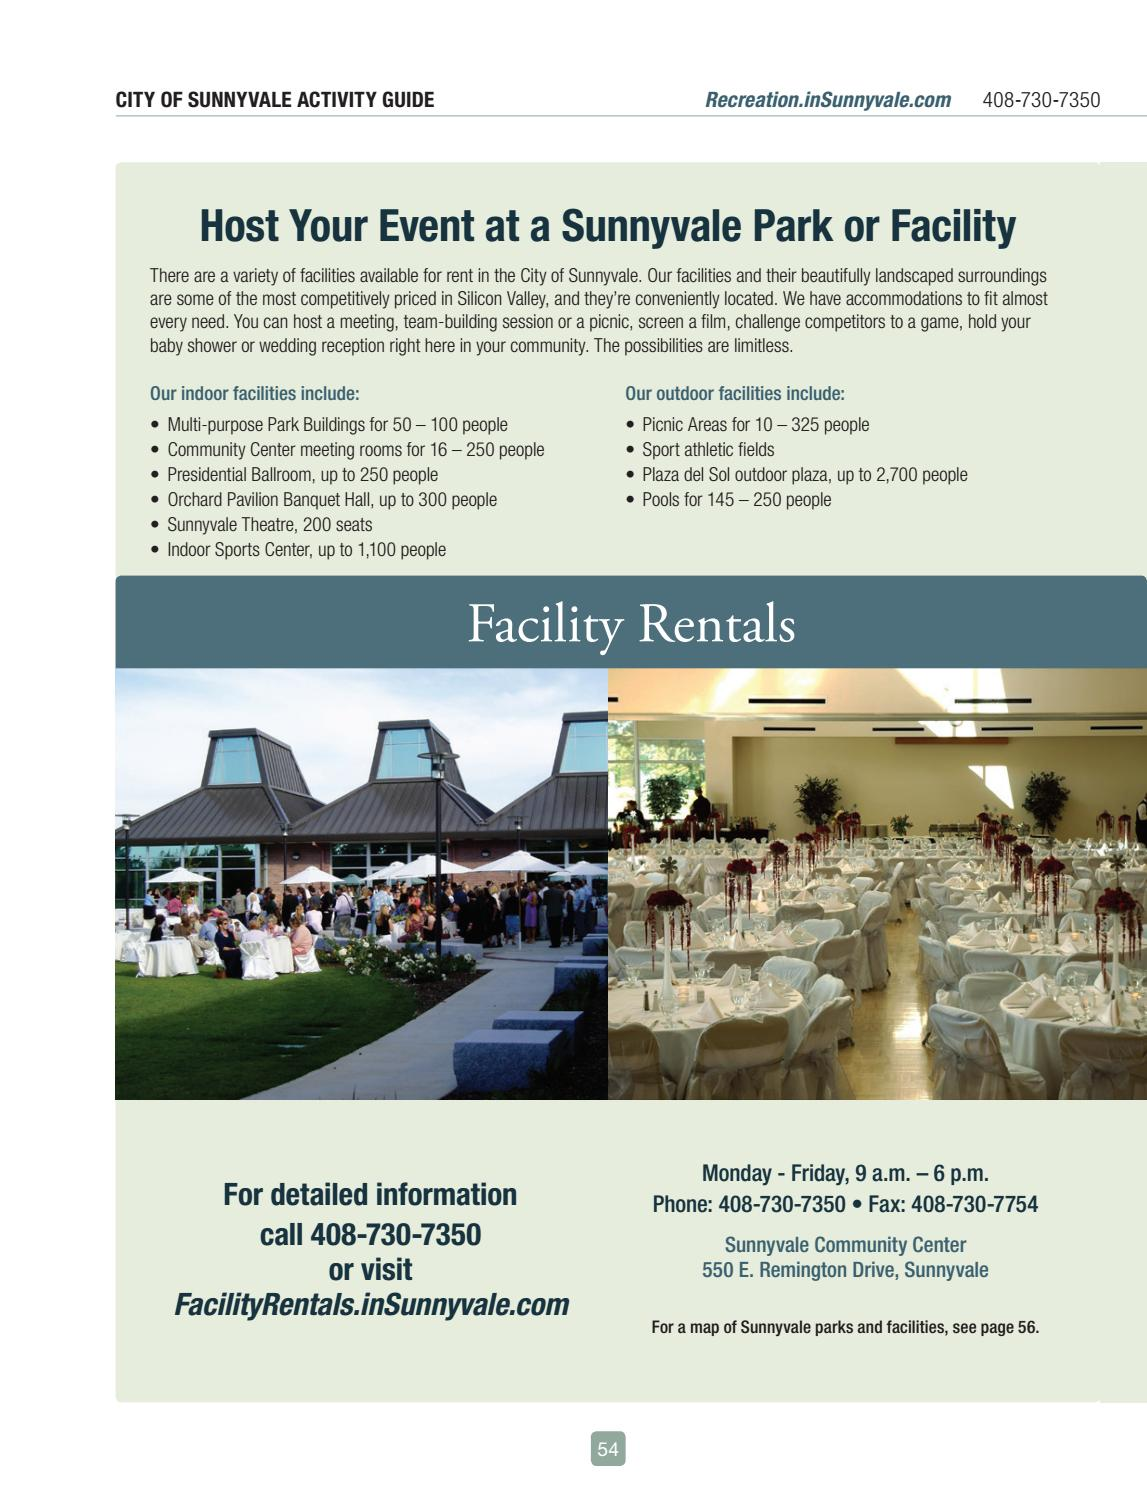 2017 summer activity guide by city of sunnyvale community services.